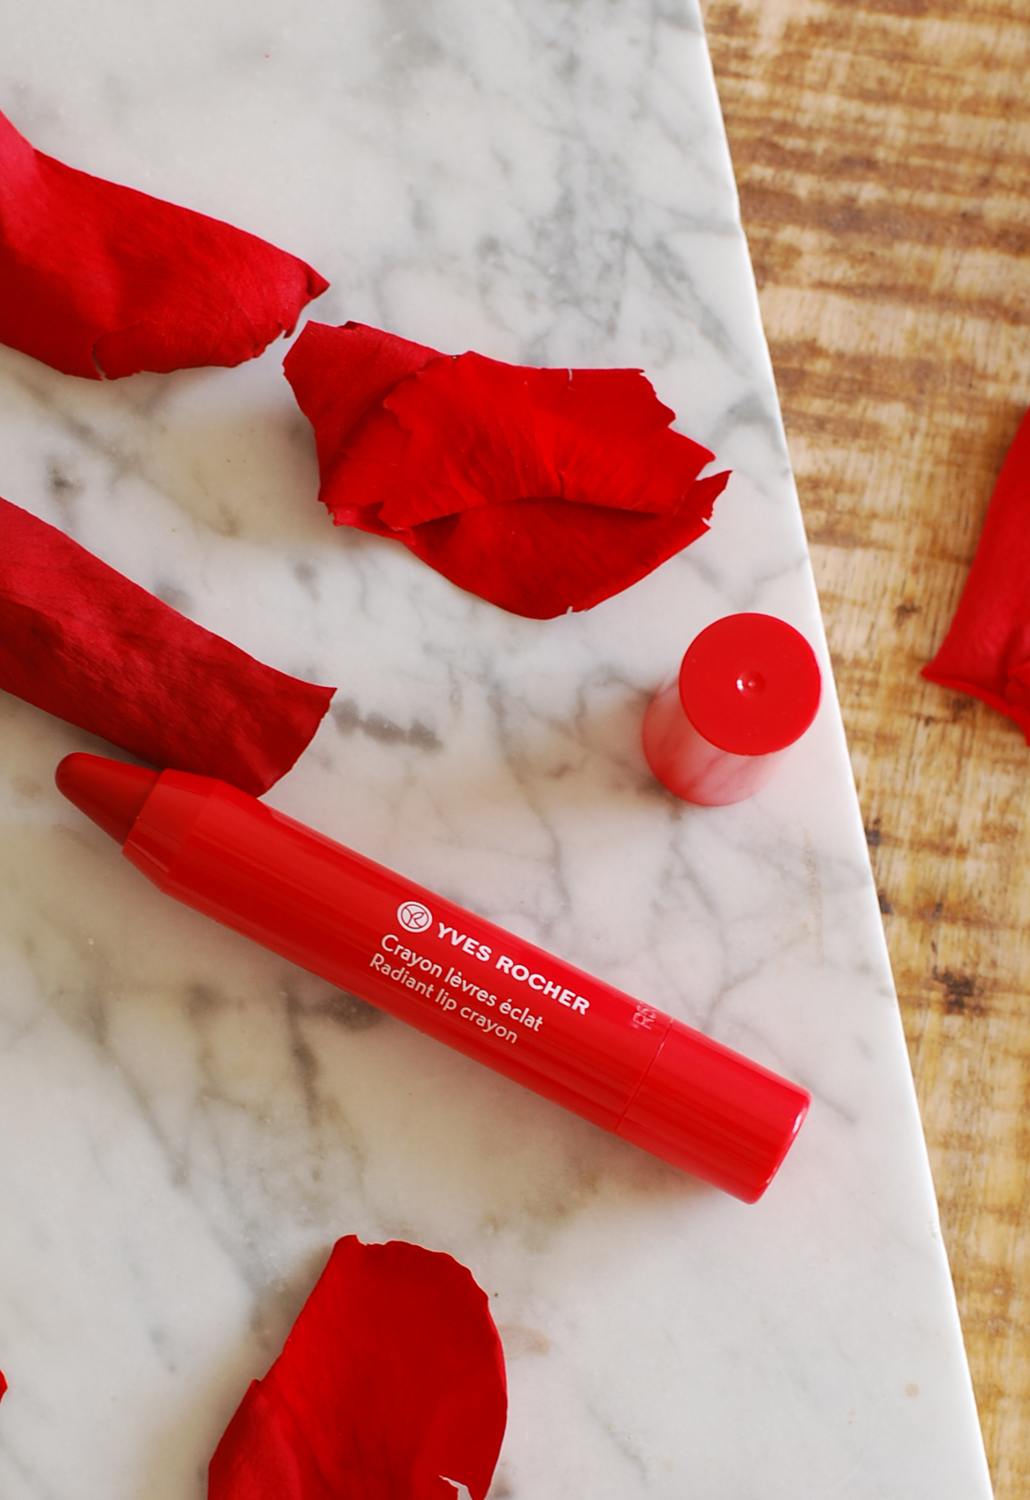 Yves Rocher zéro défaul mattifying and long-lasting lip primer swatch radiant lip crayon rouge flamboyant